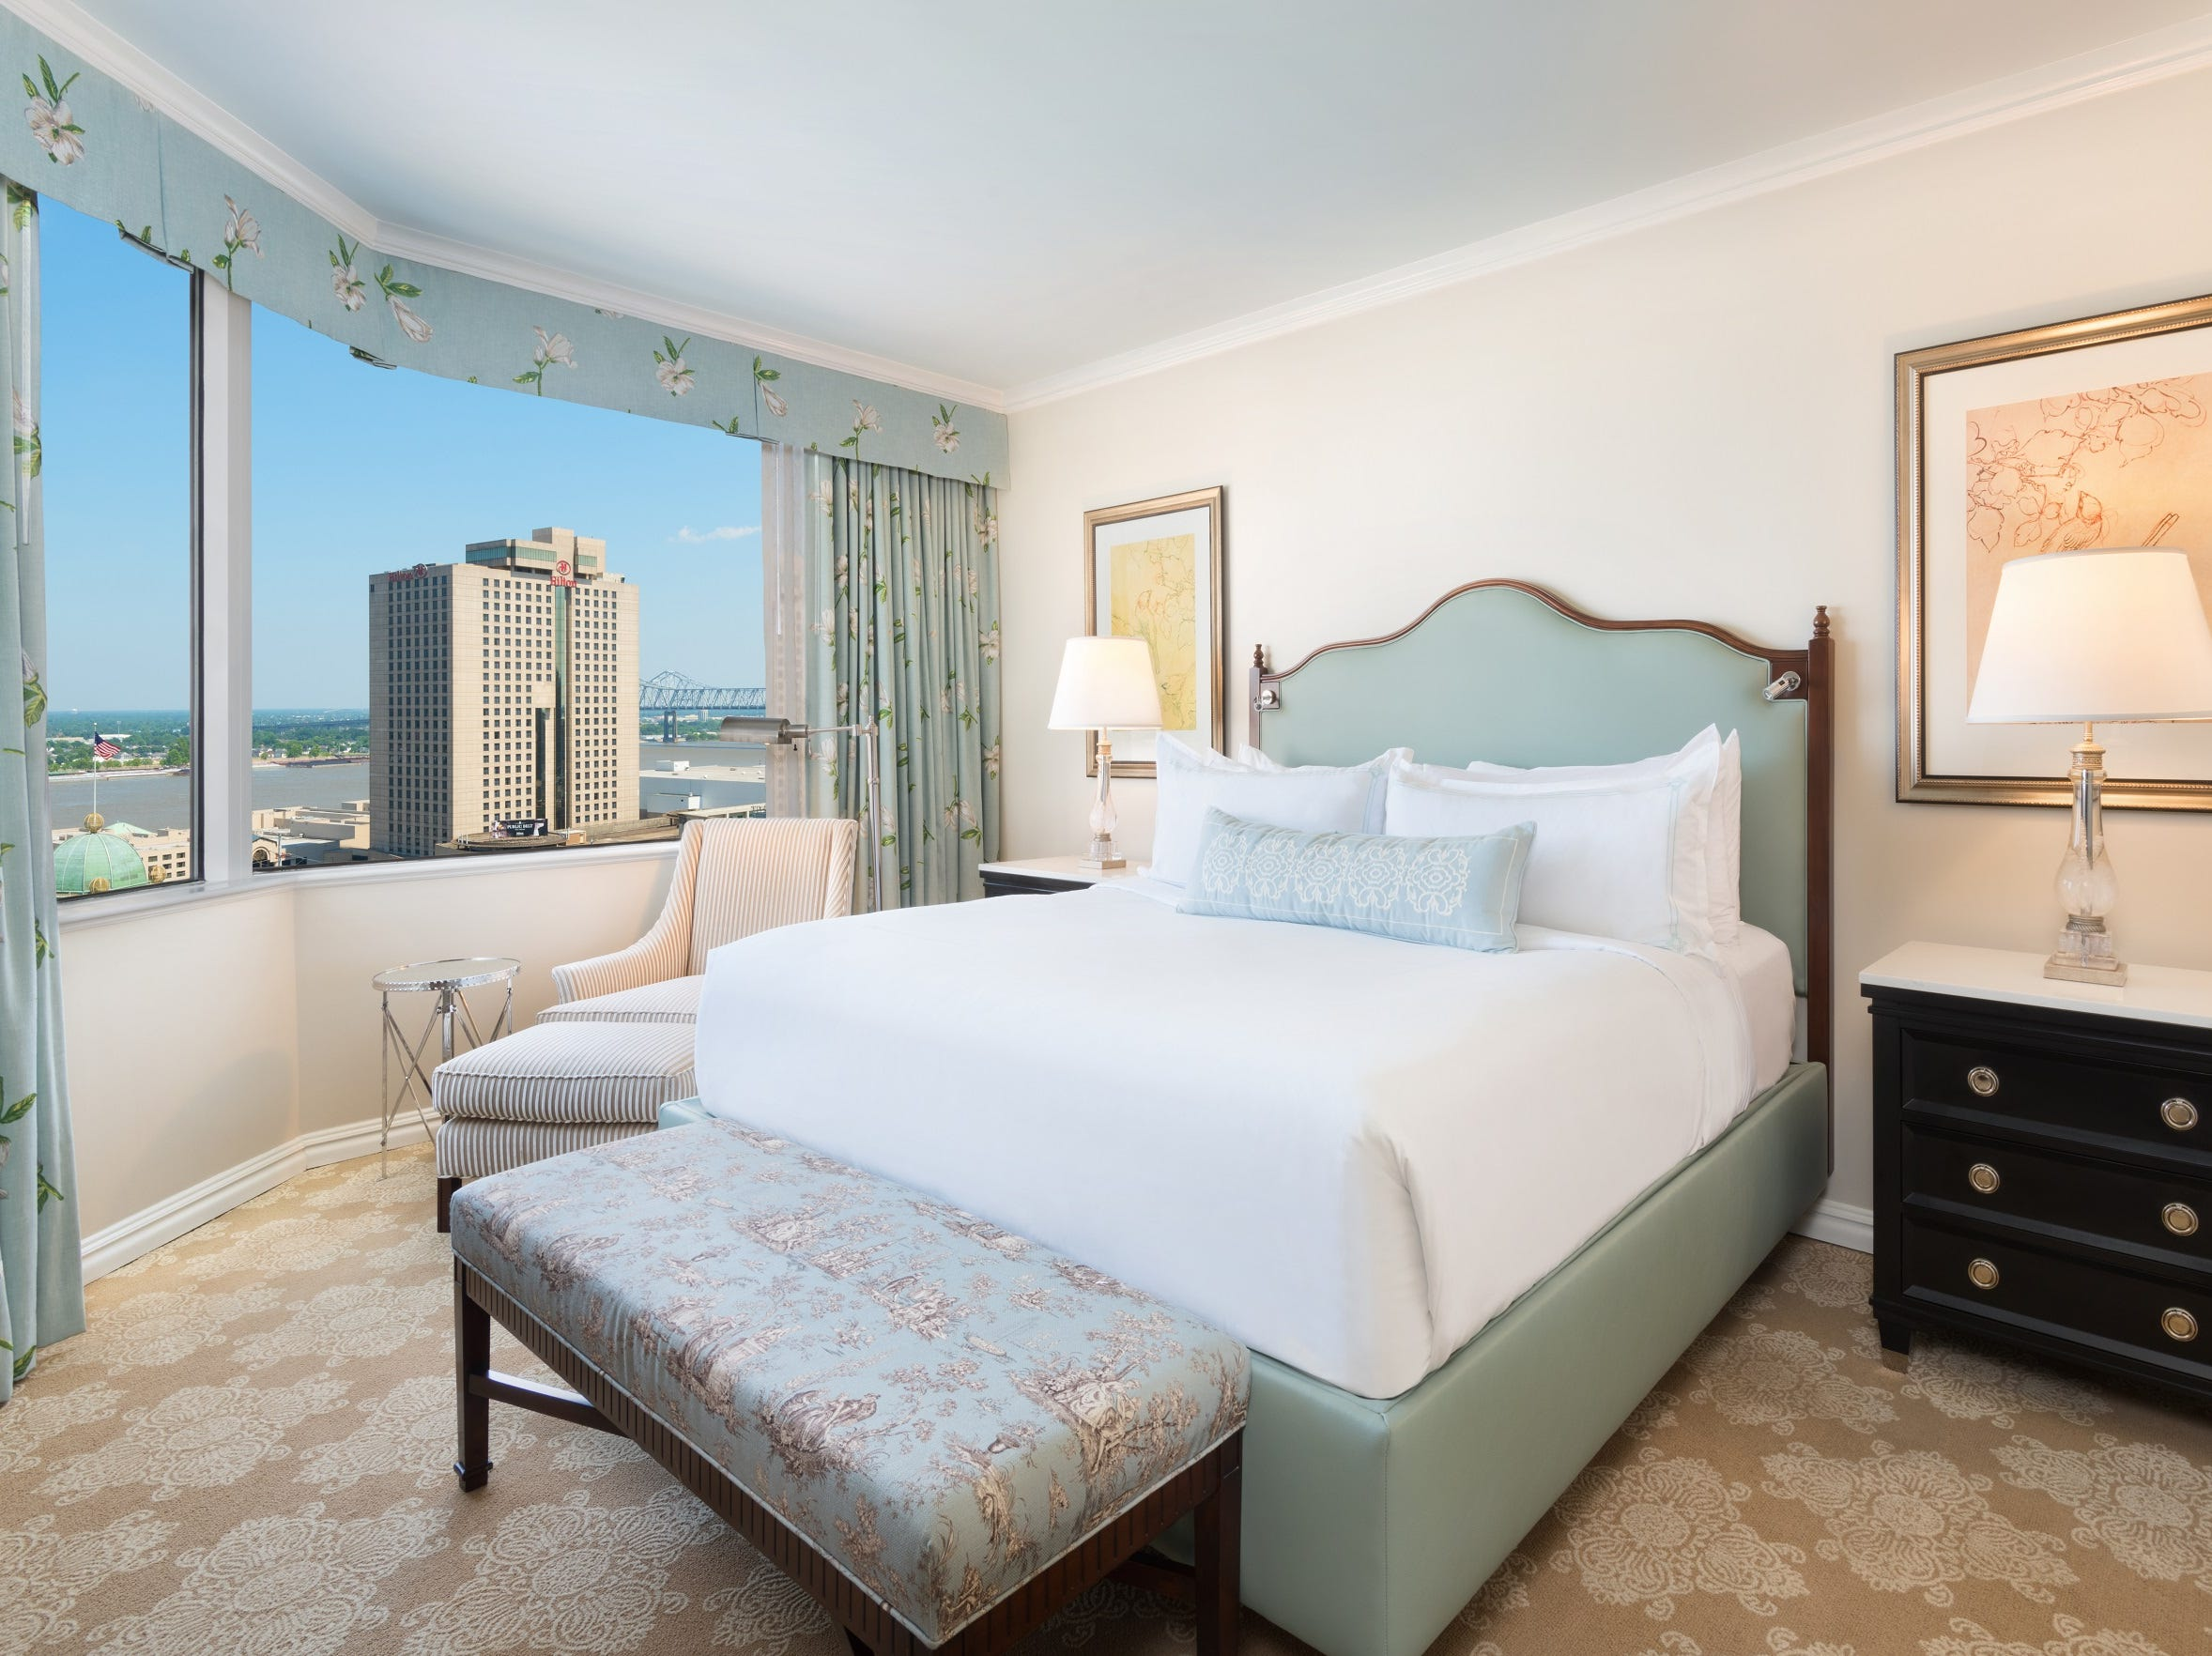 All 316 guestrooms and suites at the Windsor Court Hotel in New Orleans were modernized.